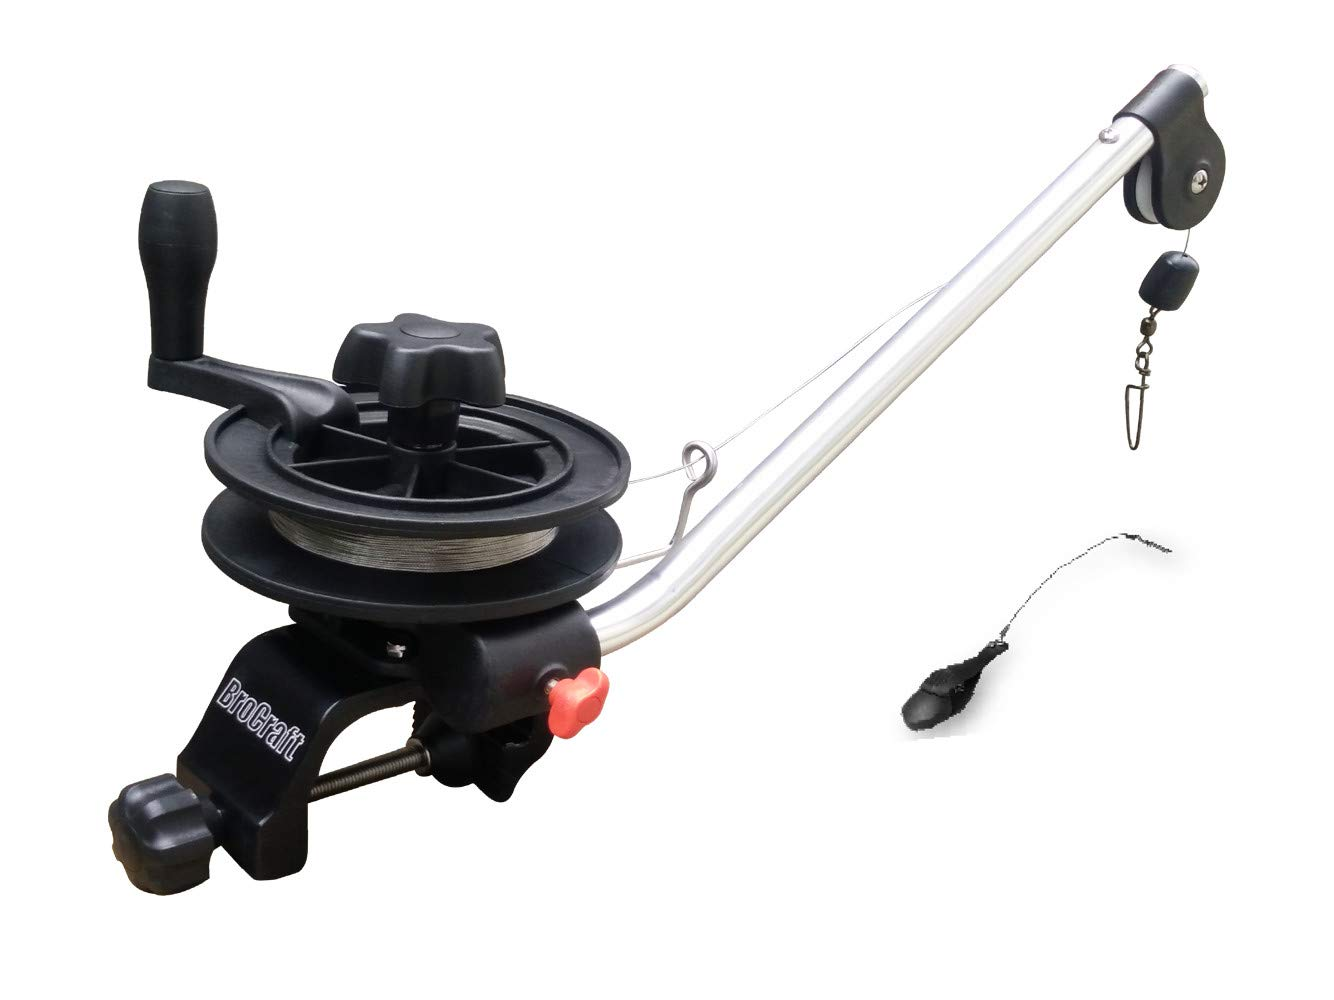 Brocraft Minin Manual Downrigge with Clamp Mount/Lake Troller Manual Downrigger/Clamp On Lake Downrigger